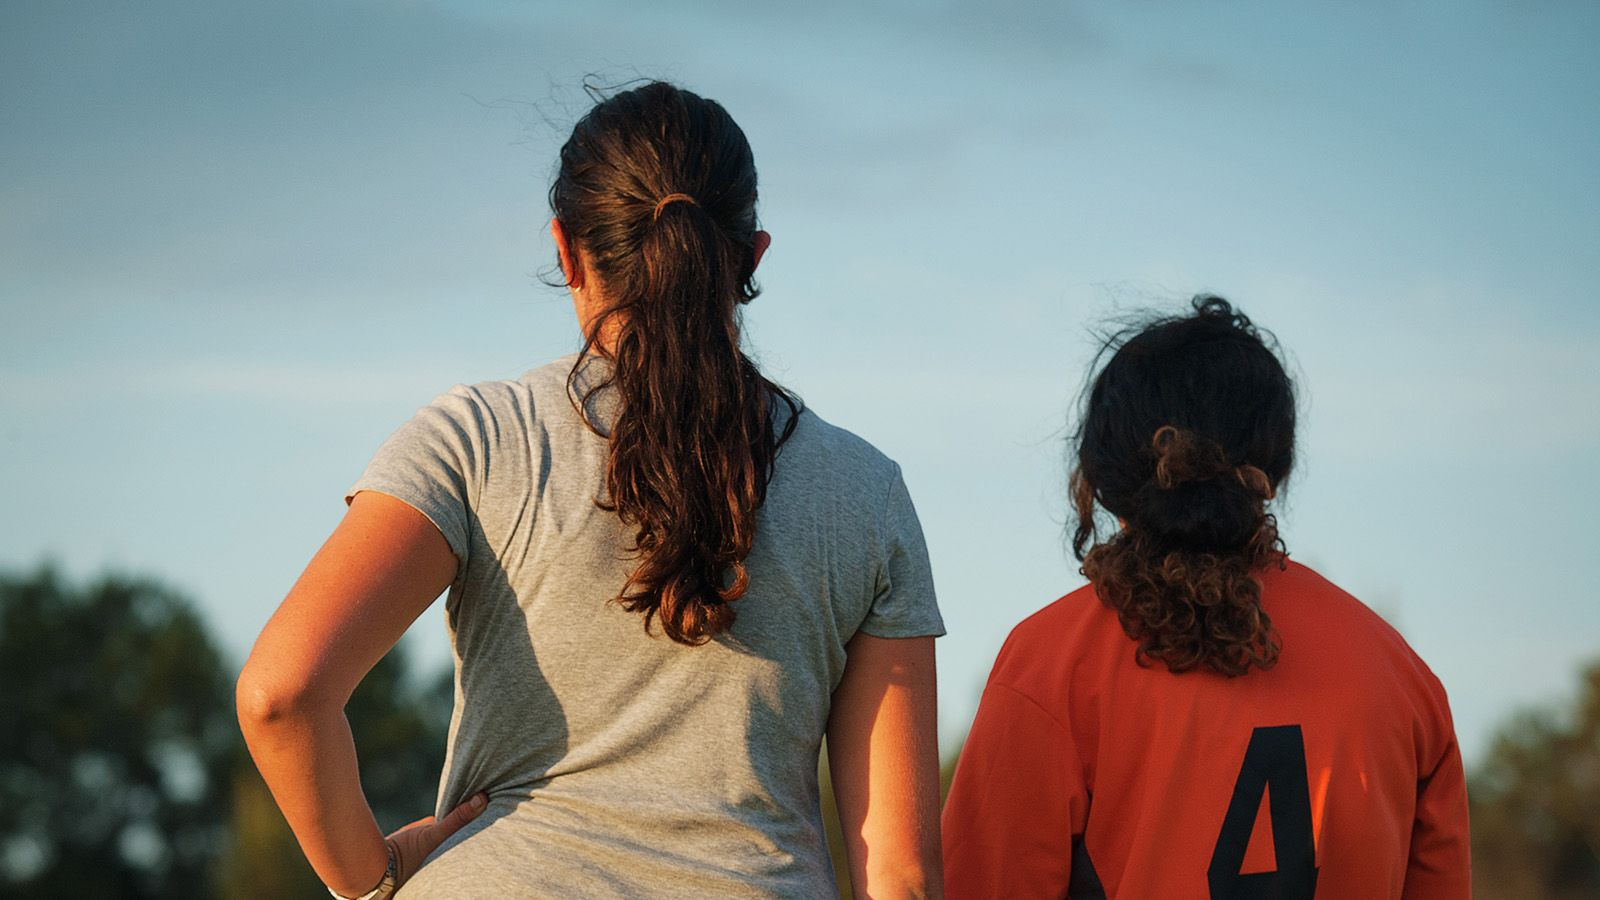 The backs of two women wearing different sporting uniforms banner image